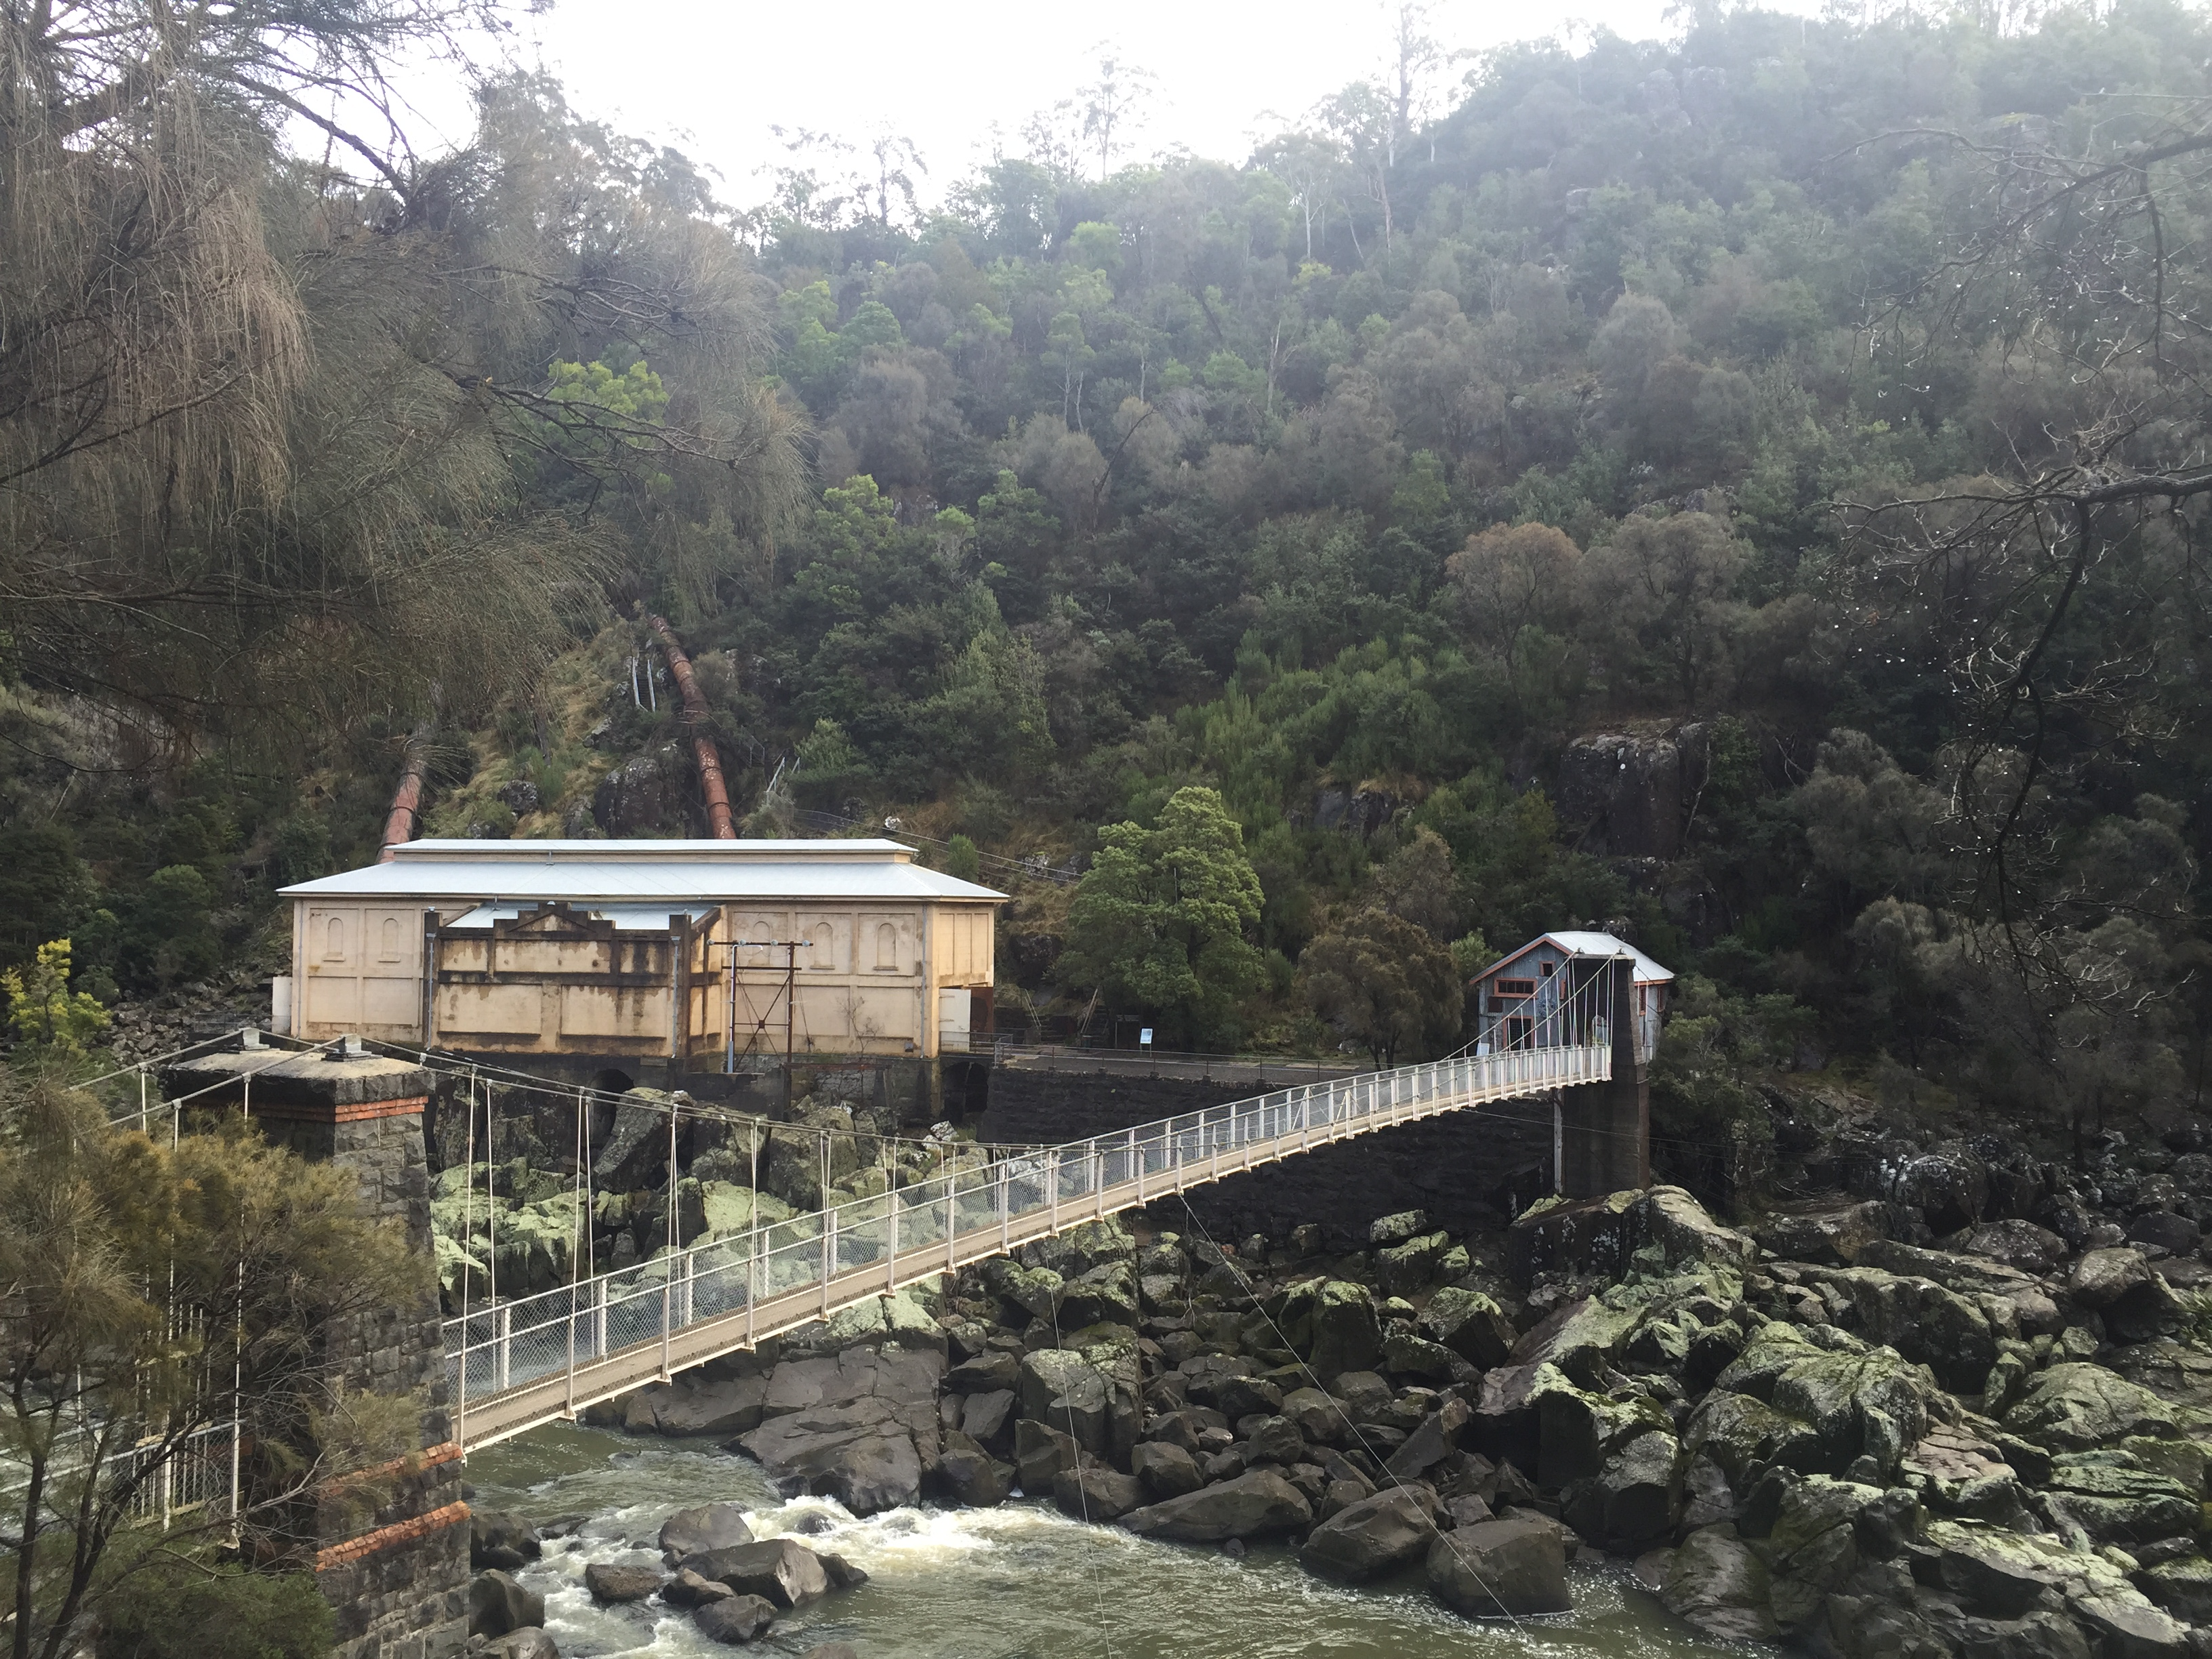 Heading towards the end of the track before crossing the suspension bridge to Duck Reach Power Stati